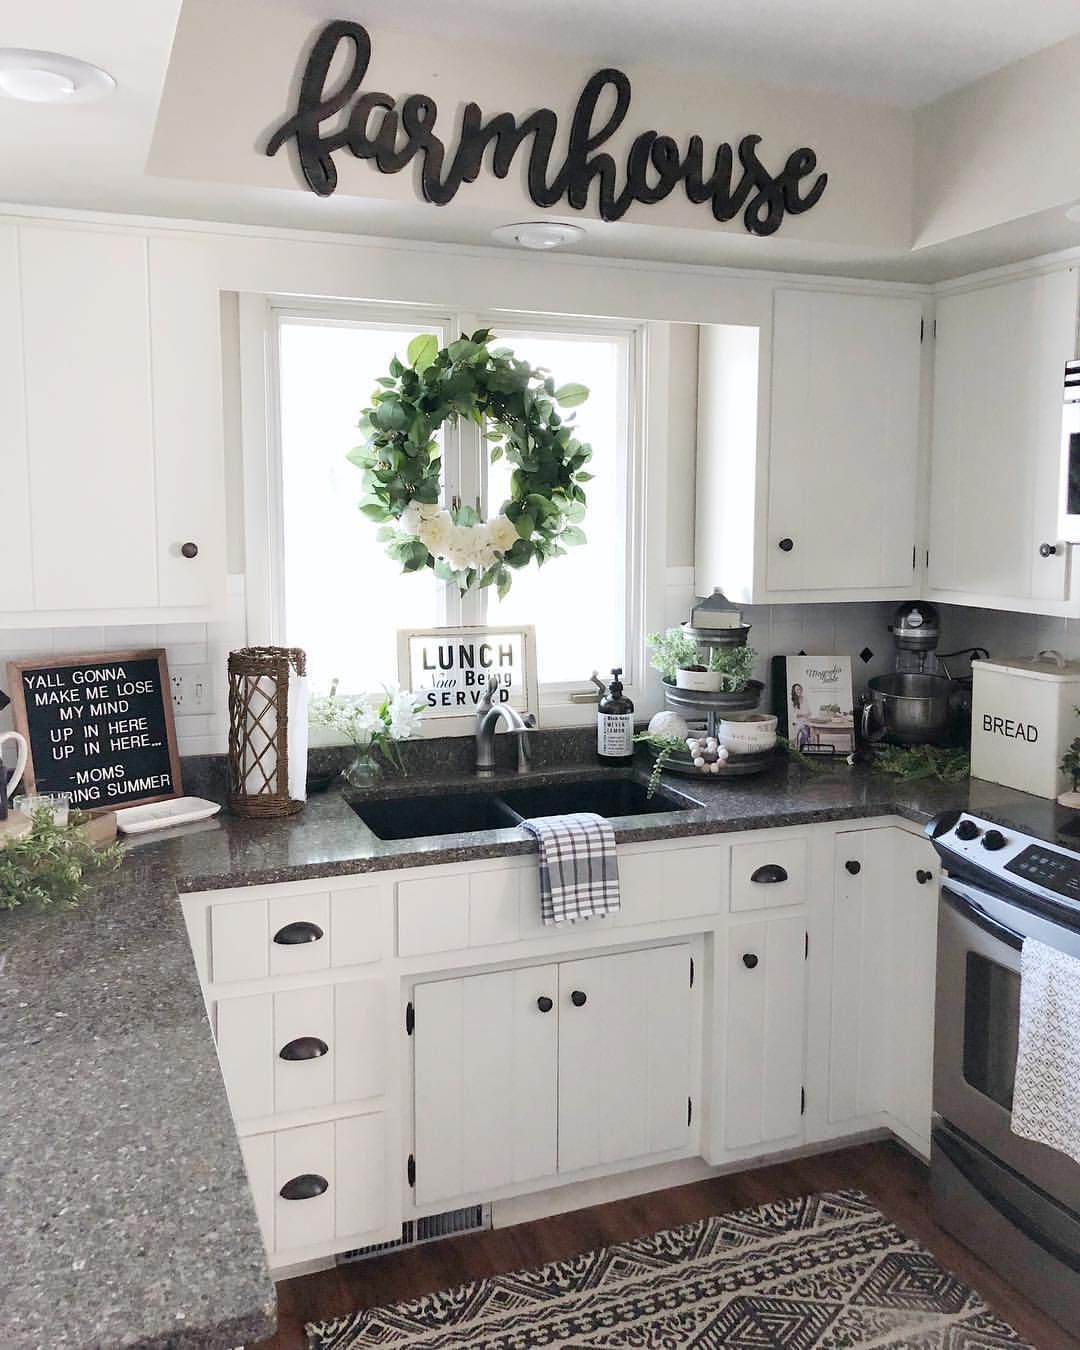 35 Best Farmhouse Kitchen Decor Ideas To Fuel Your Remodel